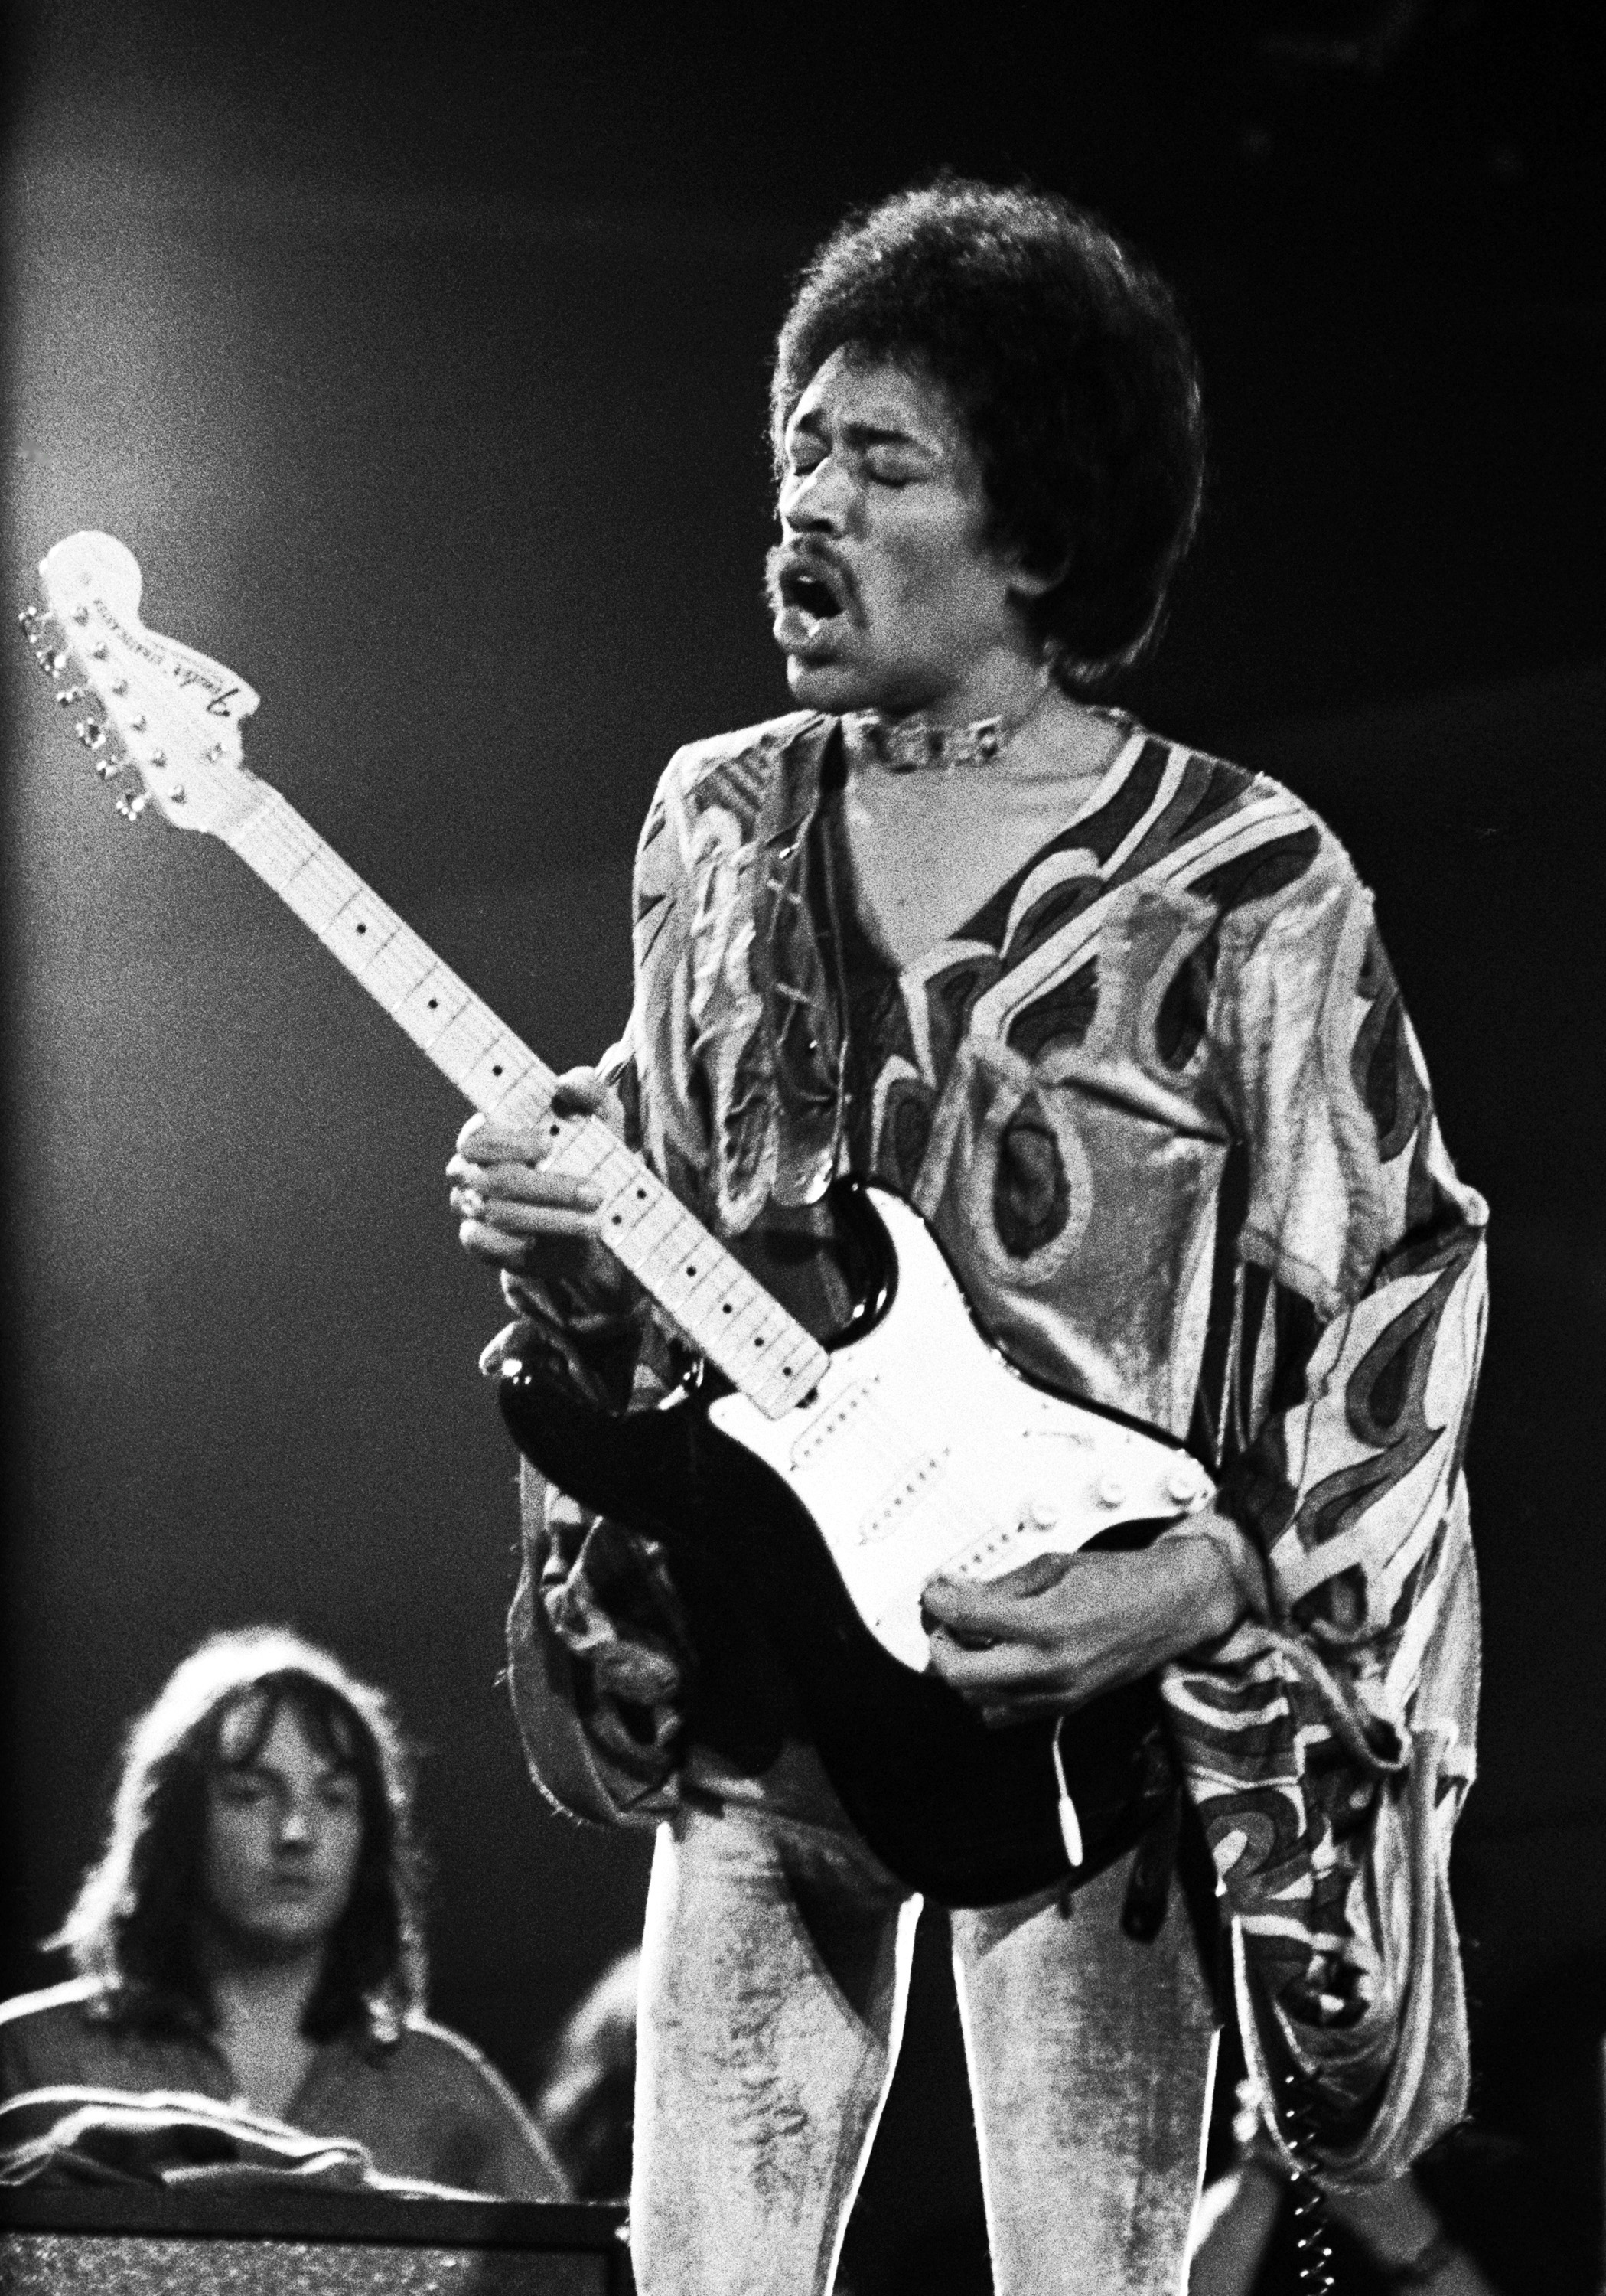 New Jimi Hendrix Documentary Focuses on Historic Atlanta Pop Concert